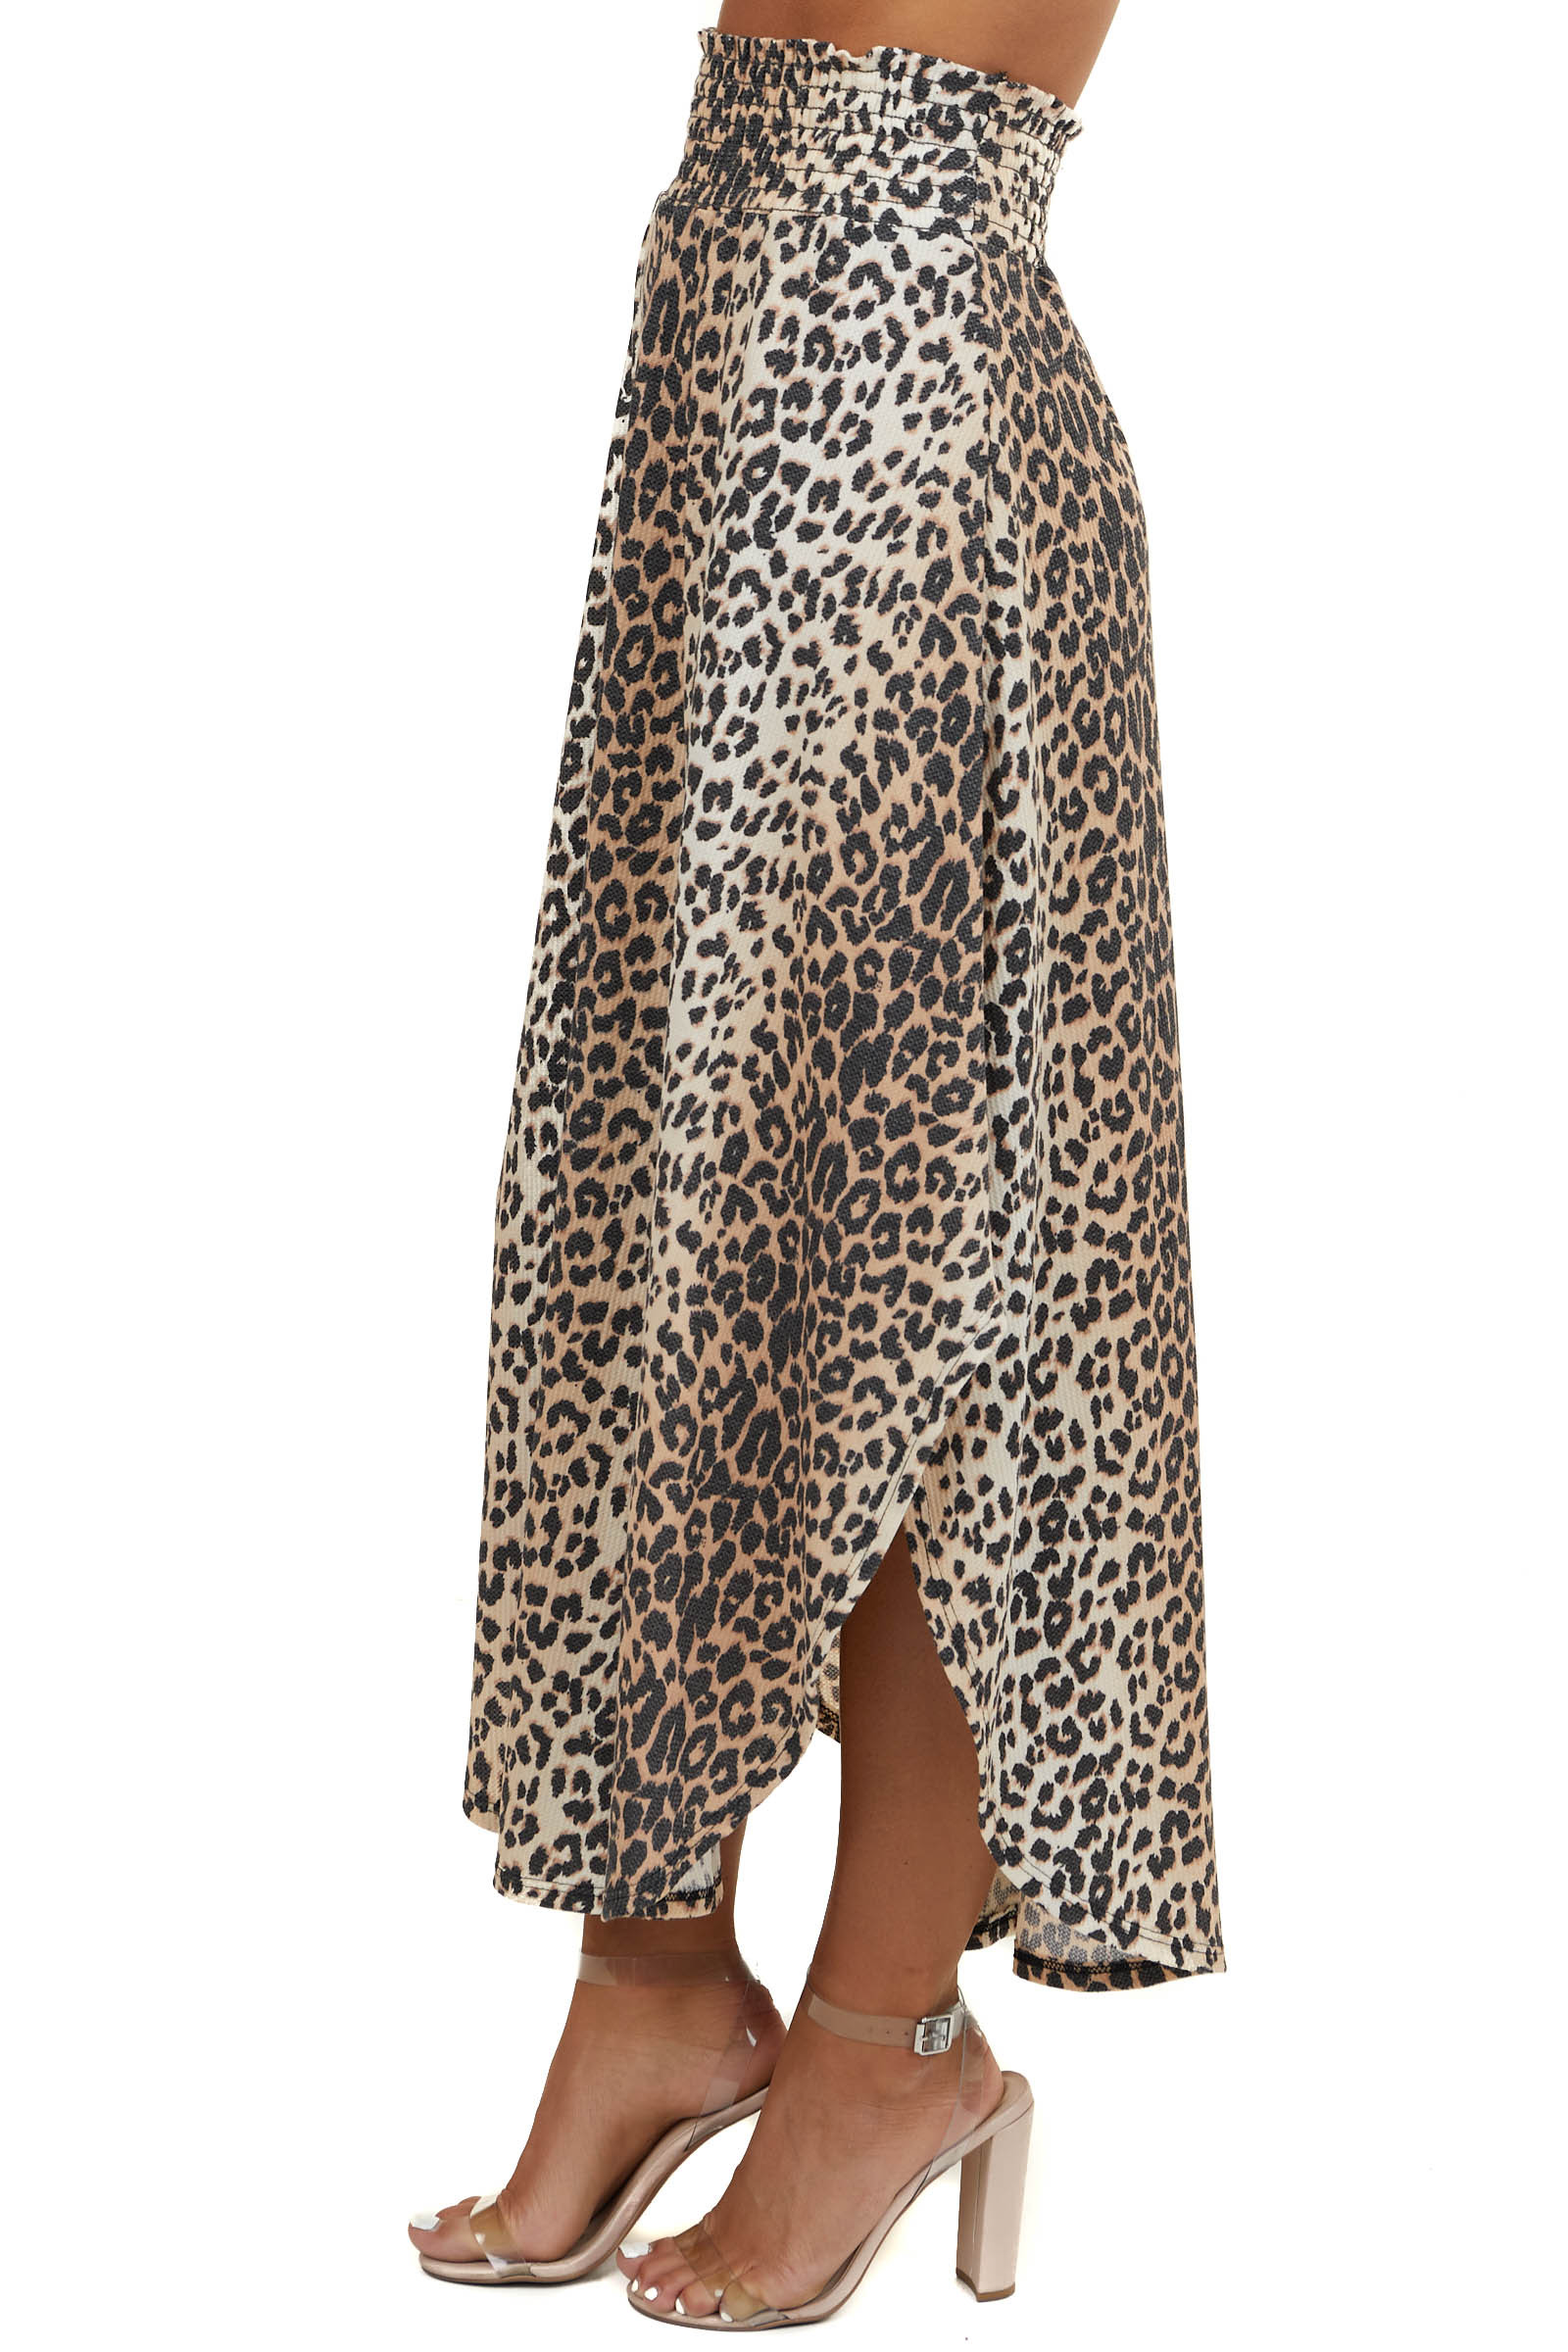 Beige Leopard Print Waffle Knit Maxi Skirt with Side Slits